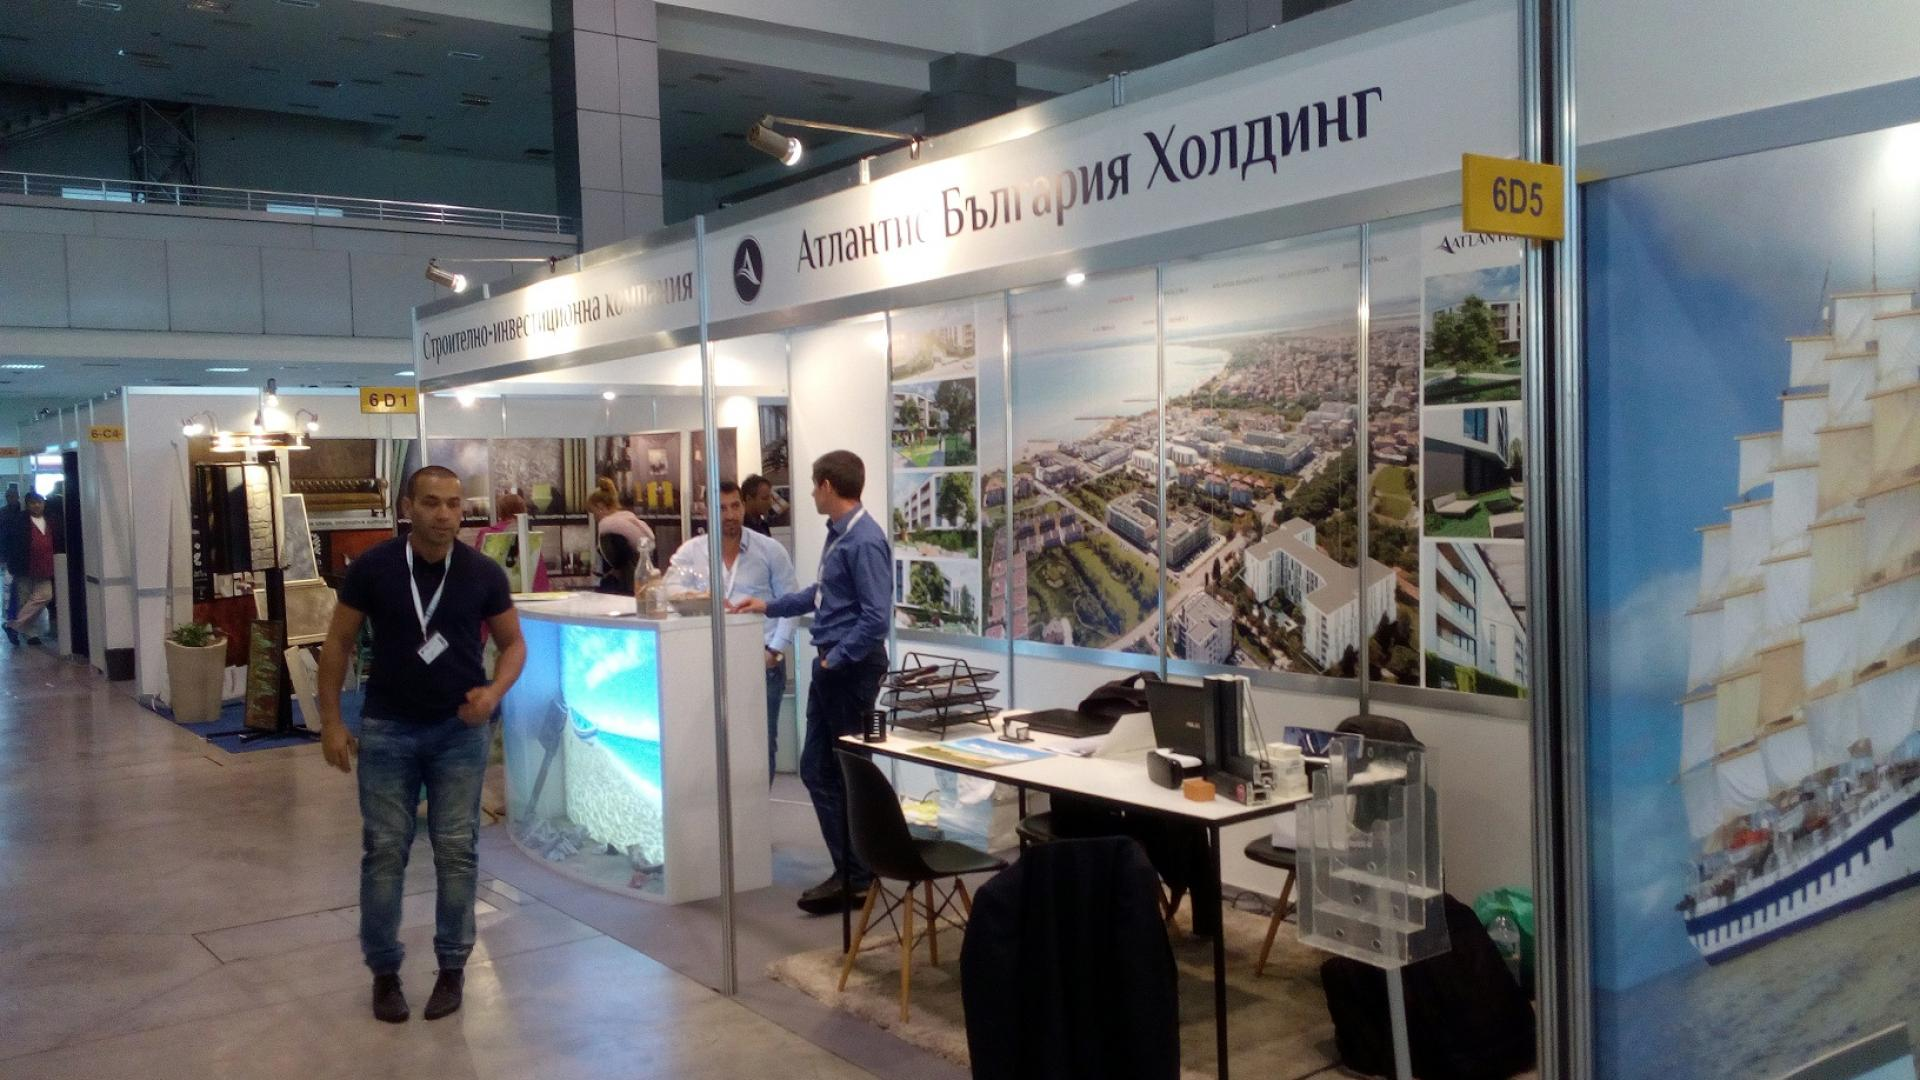 Atlantis Bulgaria with remarkable presentation at the fair in Plovdiv